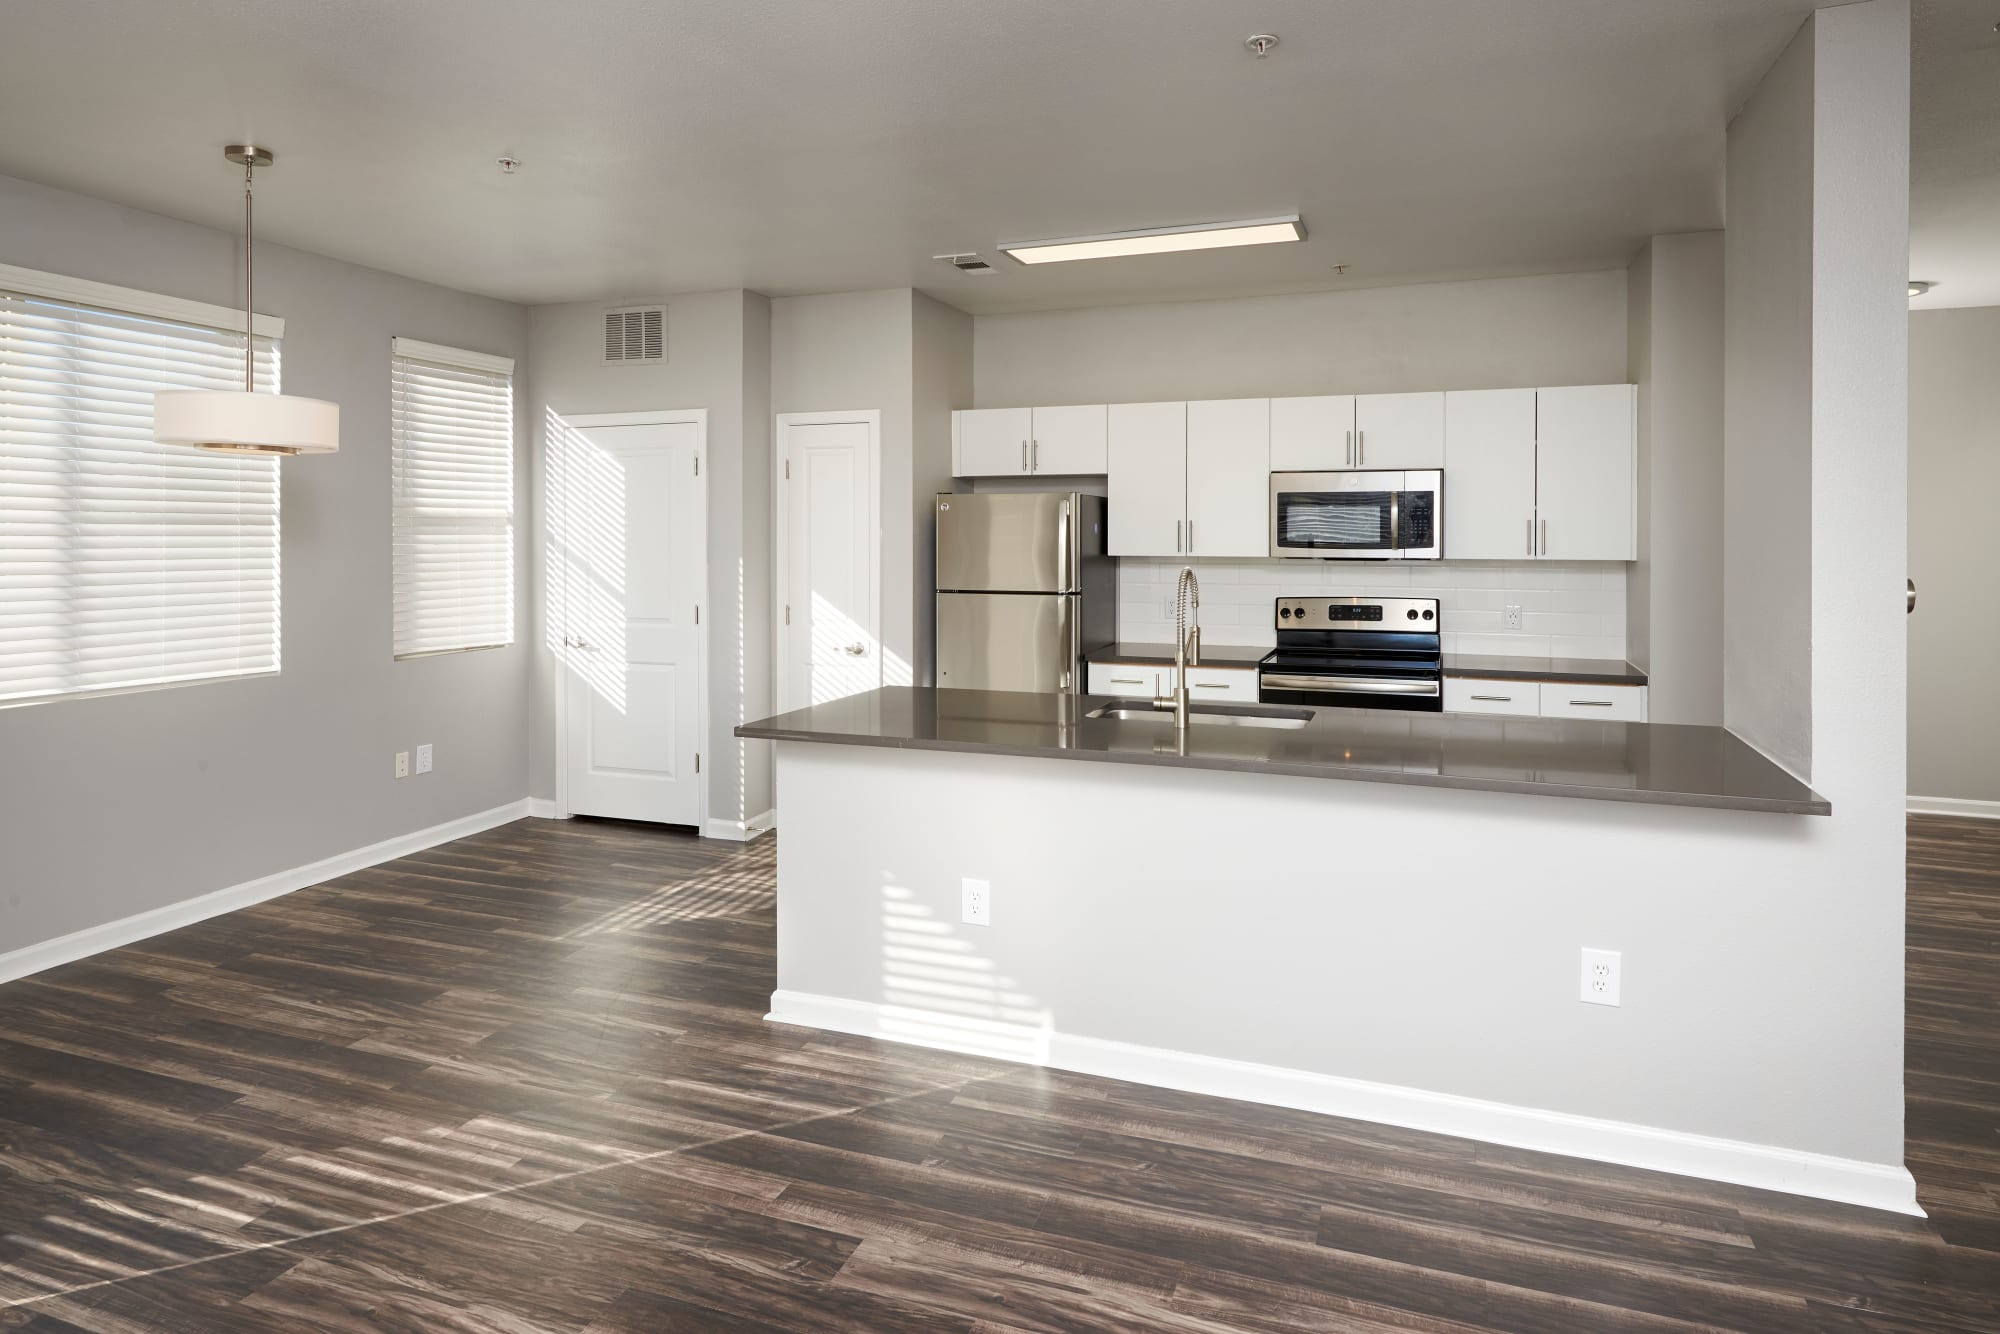 Beautiful white cabinetry renovated kitchen with stainless steel appliances and kitchen island at The Rail at Inverness in Englewood, CO